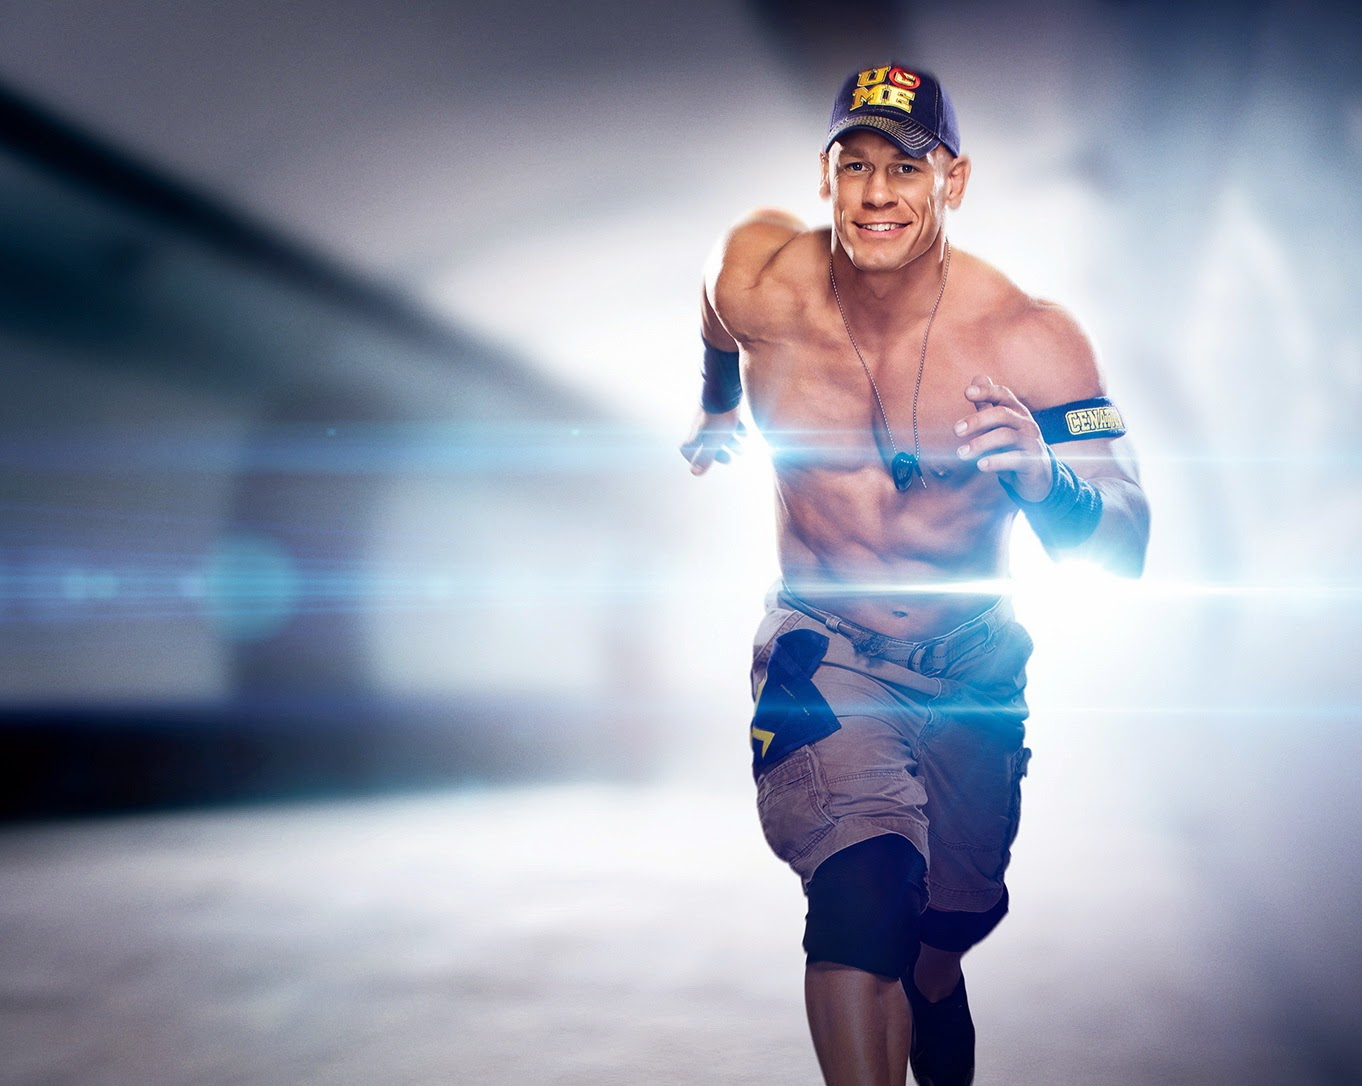 John Cena Hd Wallpaper Wallpapersafari